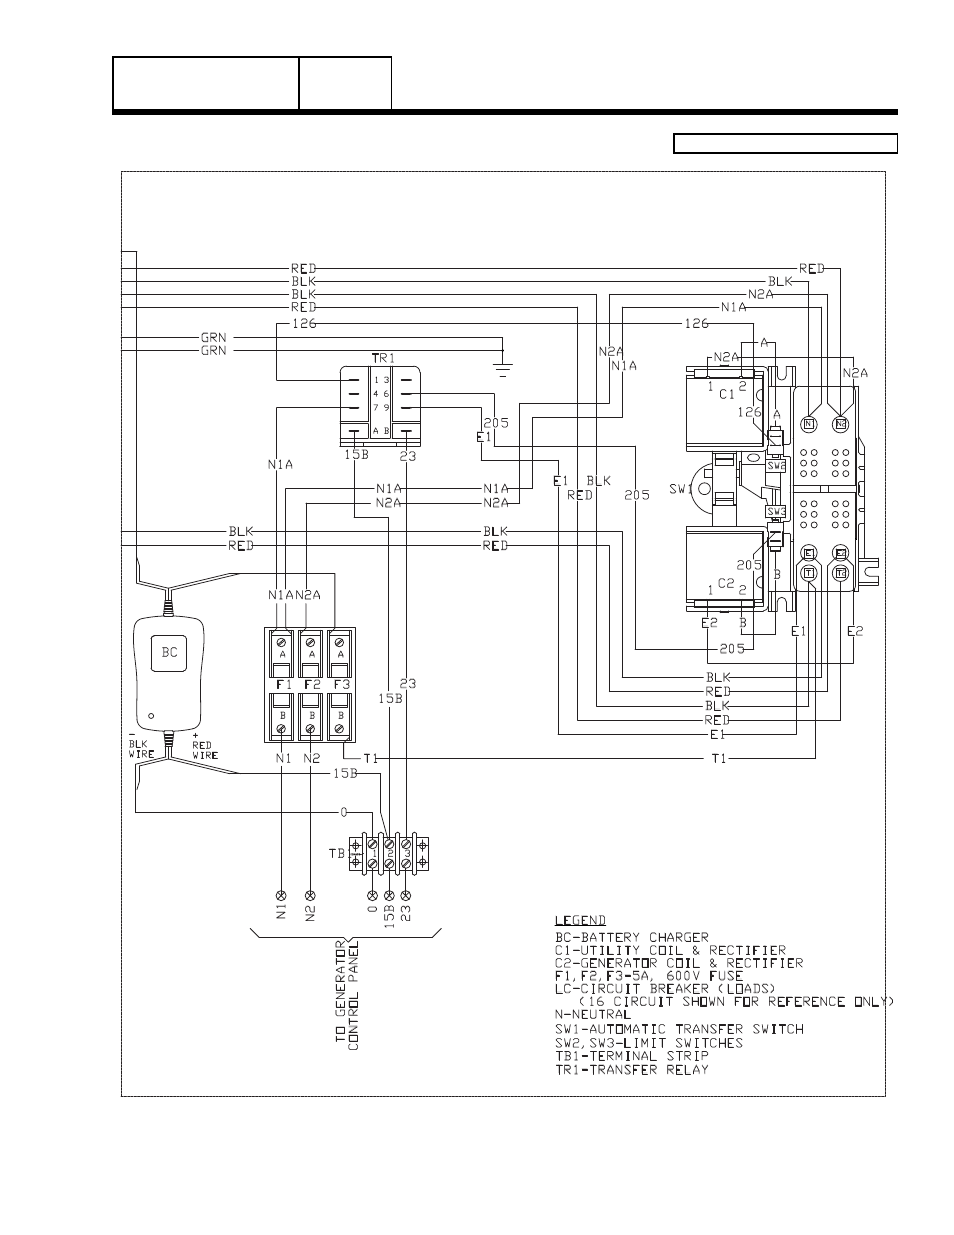 8 Kw Generac Wiring Diagram Internal Diagrams 20kw Schematic Group G Home Standby Part 7 Power Carb